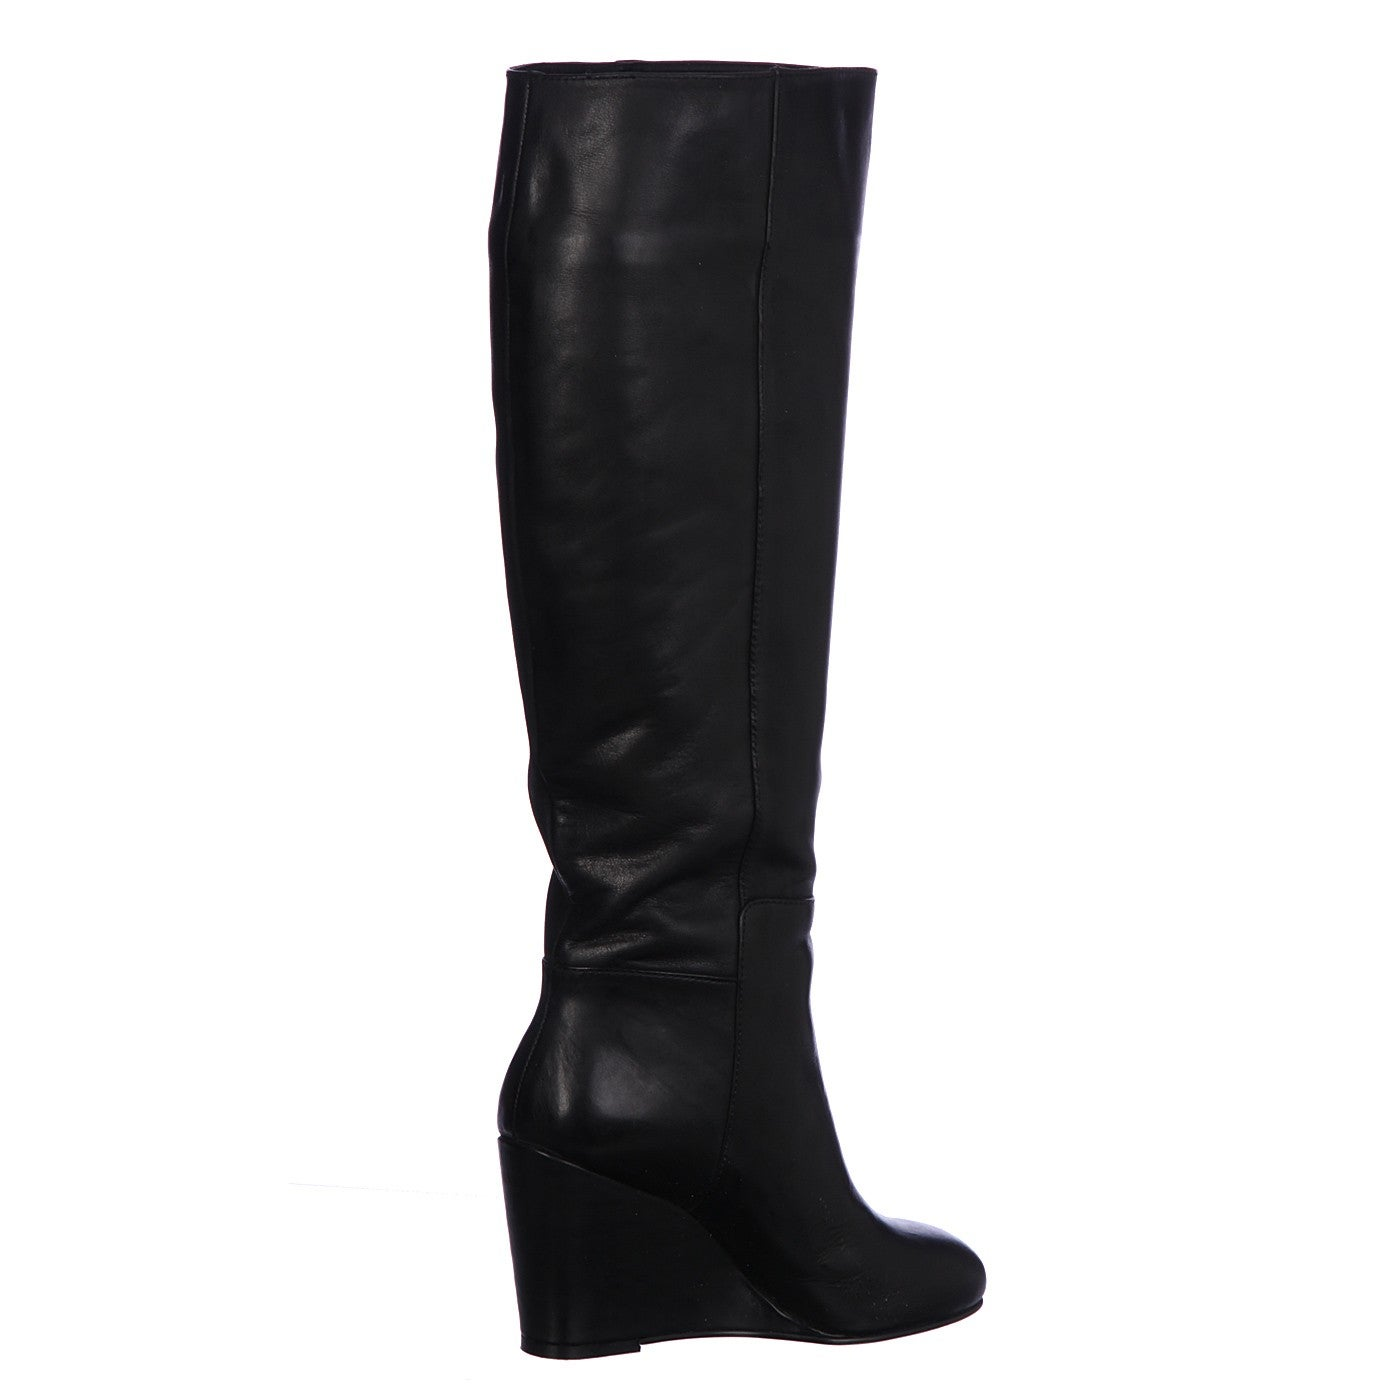 Black Tall Wedge Boots FINAL SALE